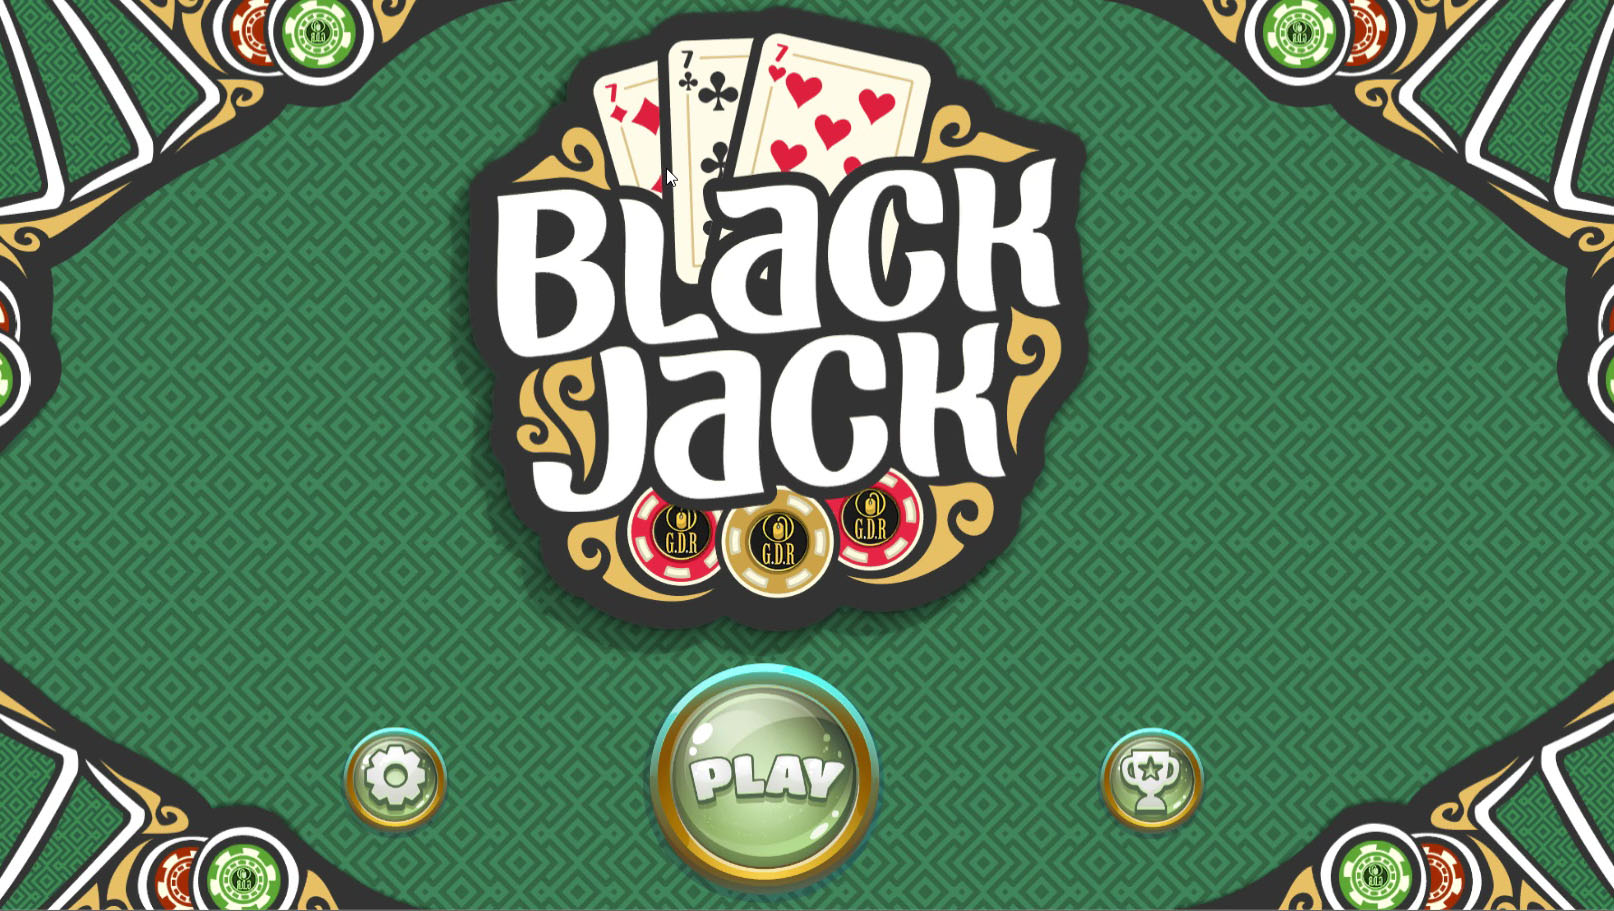 BlackJack Republic